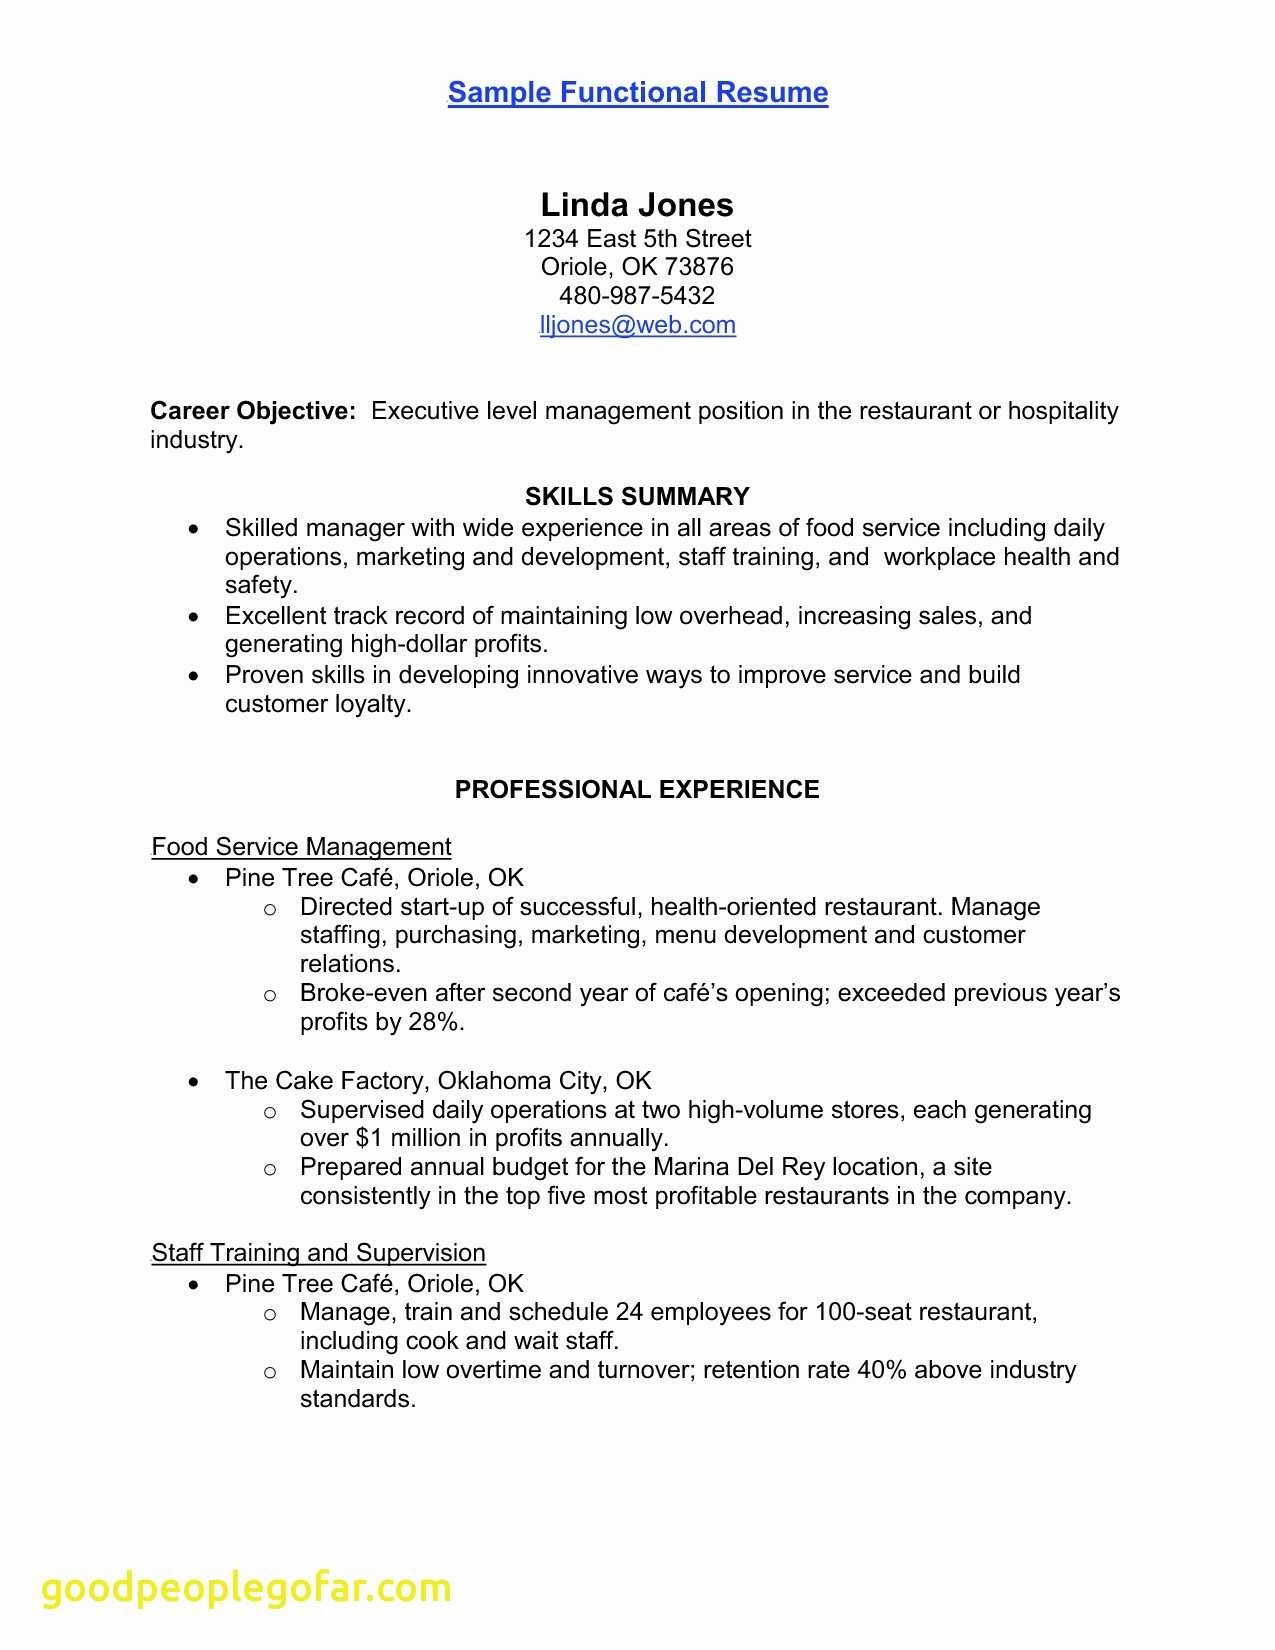 Resume for Entry Level Electrical Engineer - Electrical Engineer Resume Ressume Template Lovely Type Resume